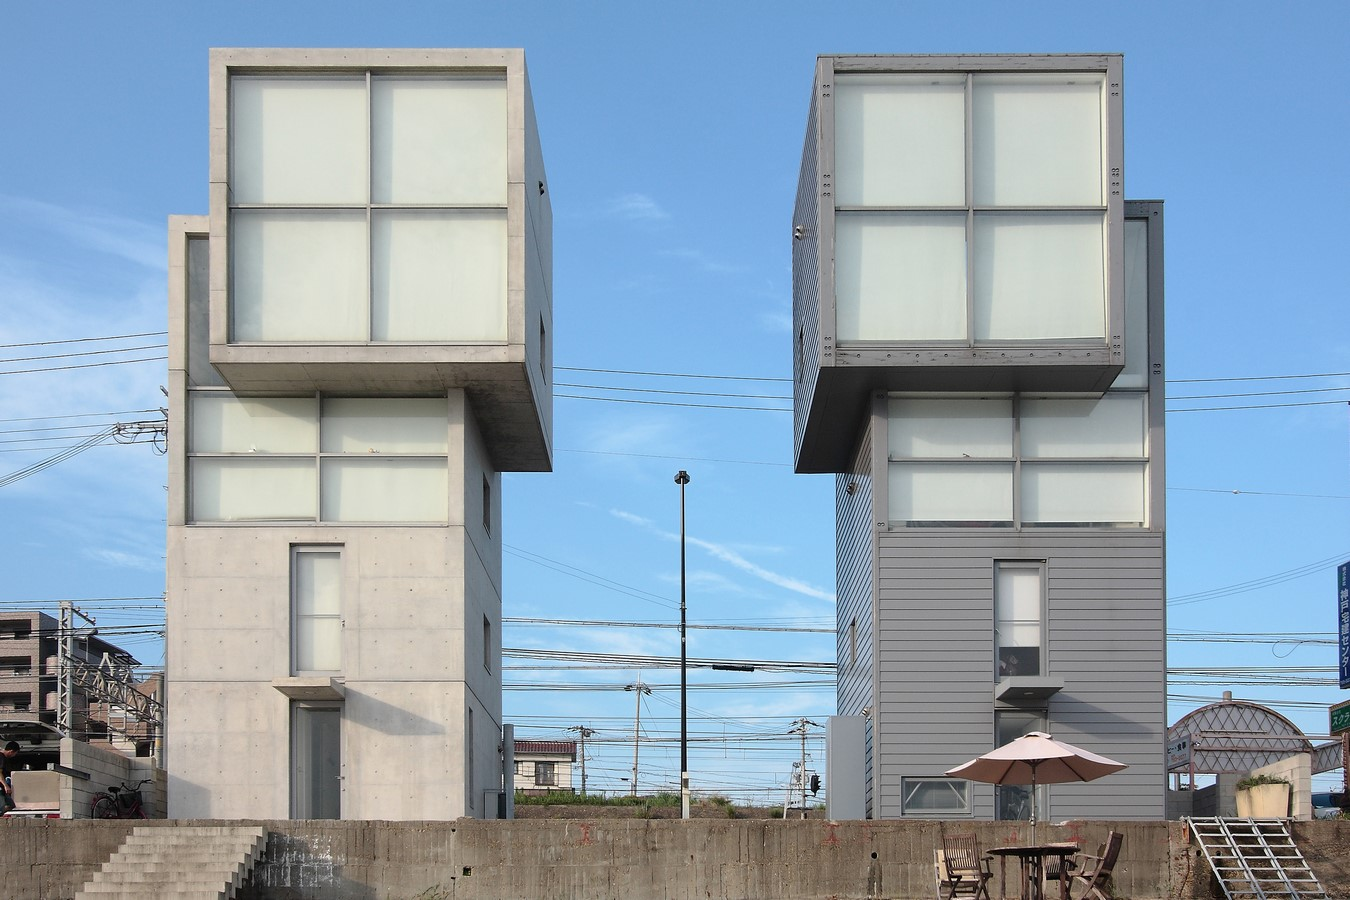 4x4 House by Tadao Ando: From aftermath of an earthquake - Sheet1